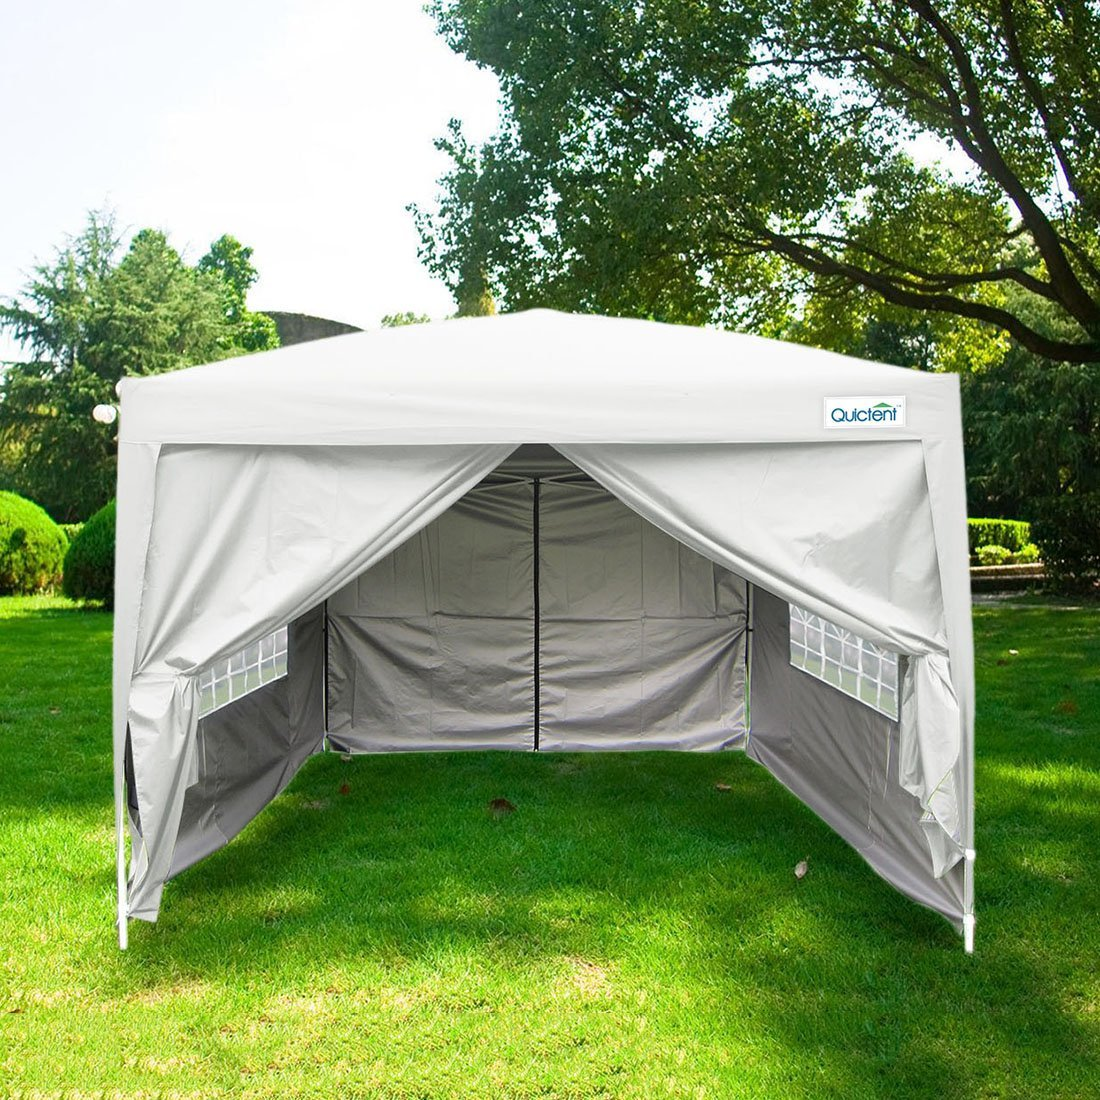 Quictent Silvox Waterproof 8x8' EZ Pop Up Canopy Commercial Gazebo Party